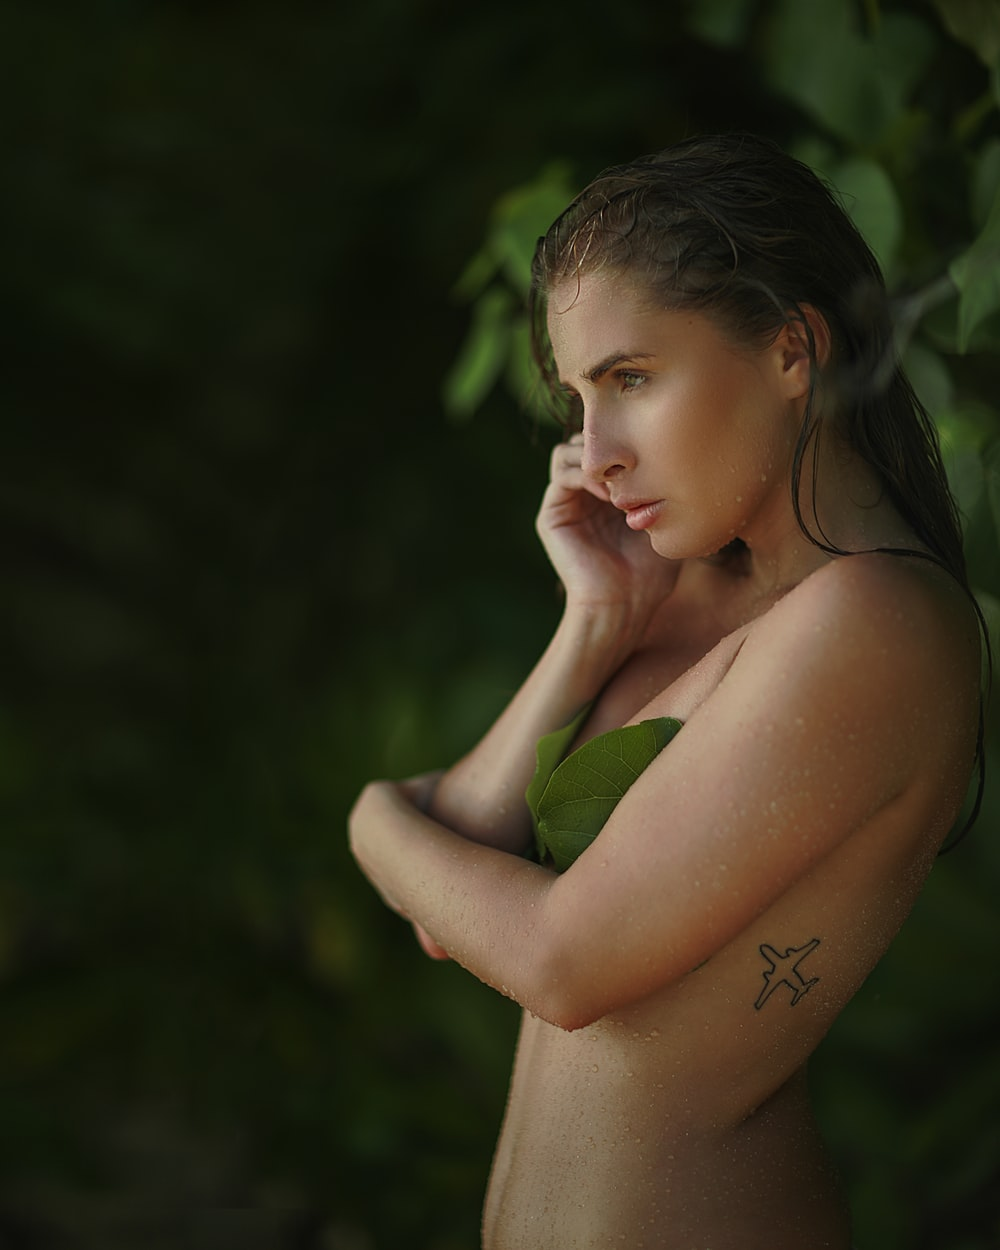 nude woman covering her chest with green leaf